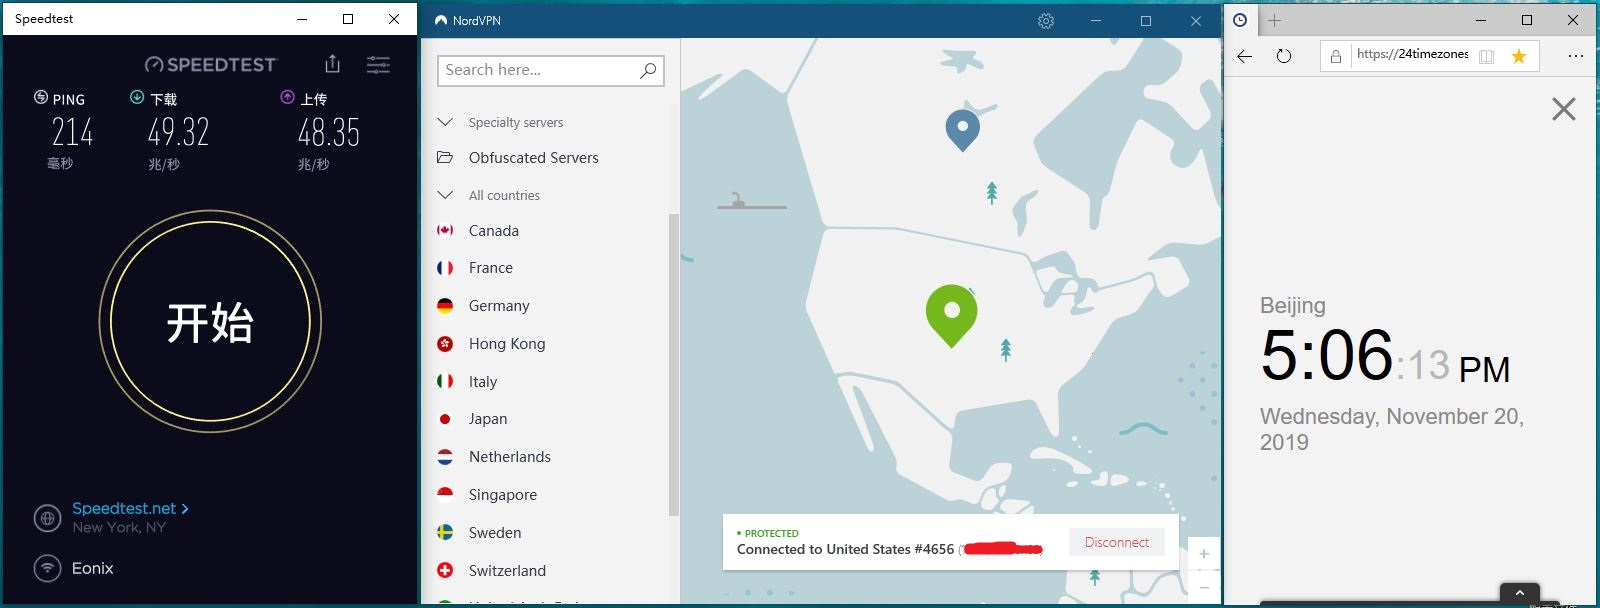 WindowsNordVPN USA 4656 中国VPN翻墙 科学上网 Speedtest - 20191120